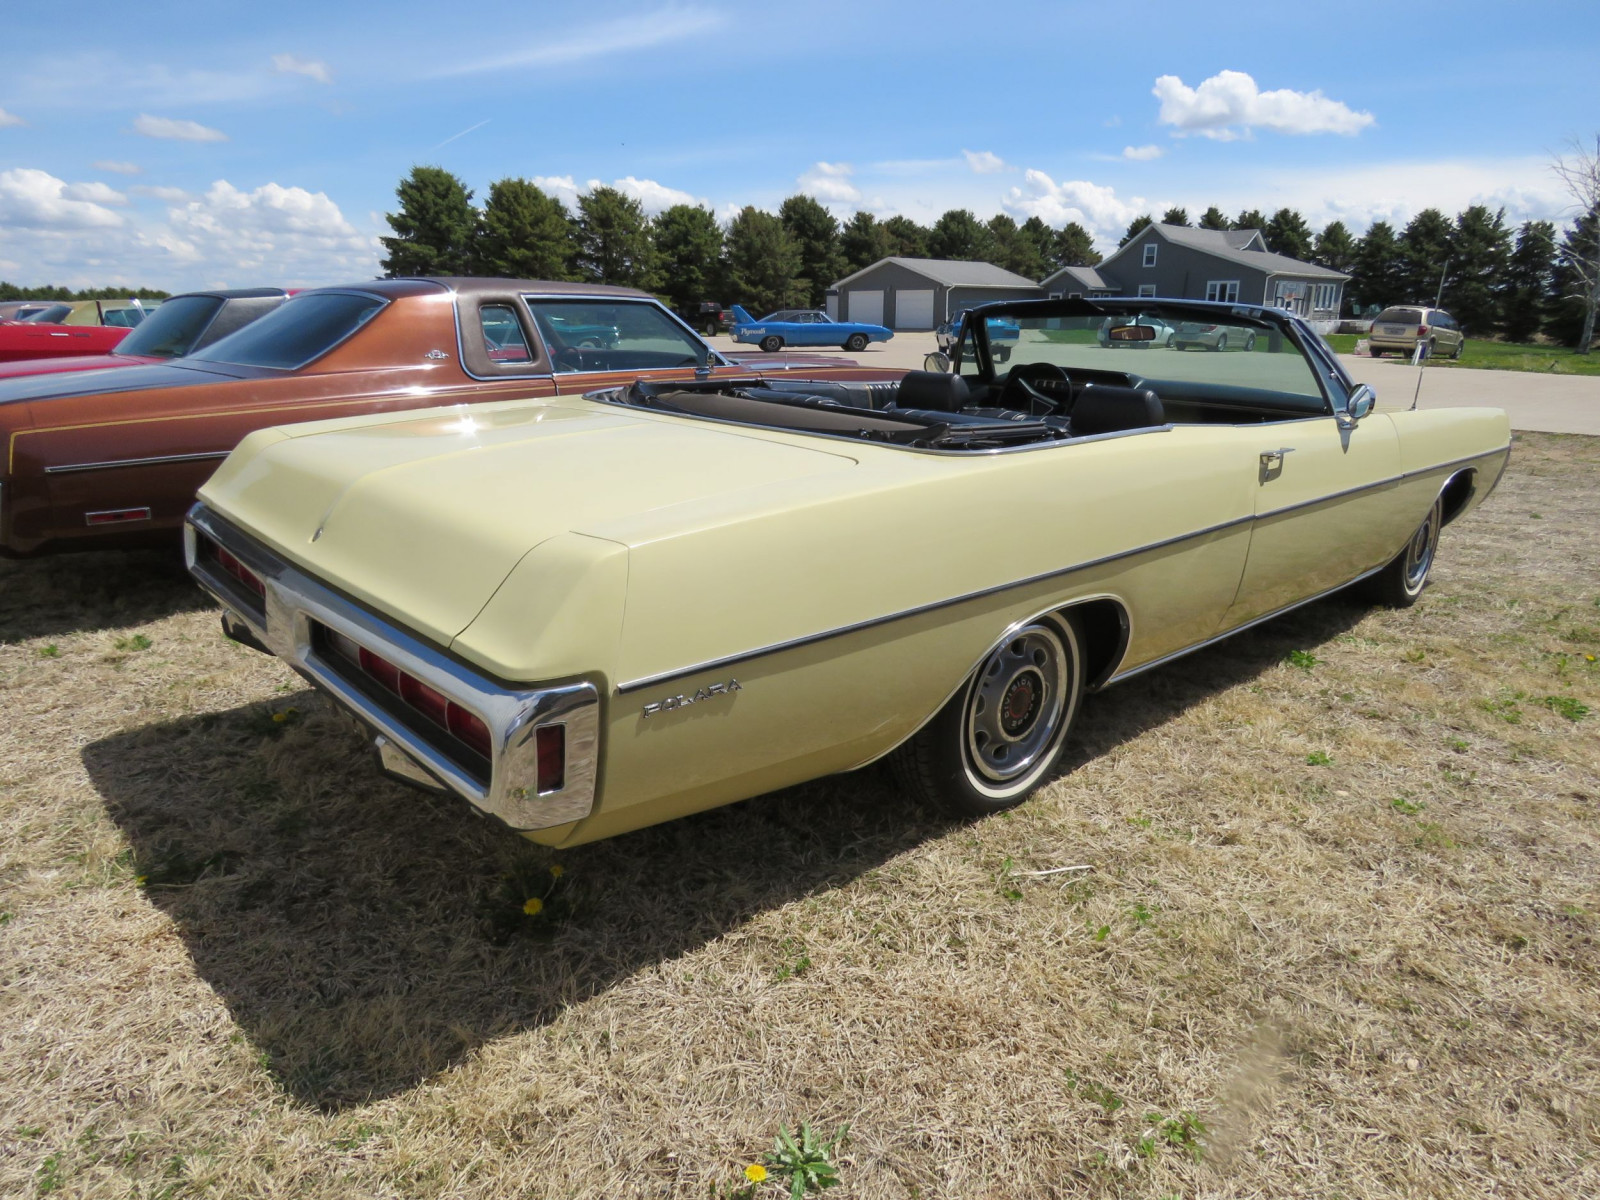 Rare 1970 Dodge Polara Convertible - Image 5